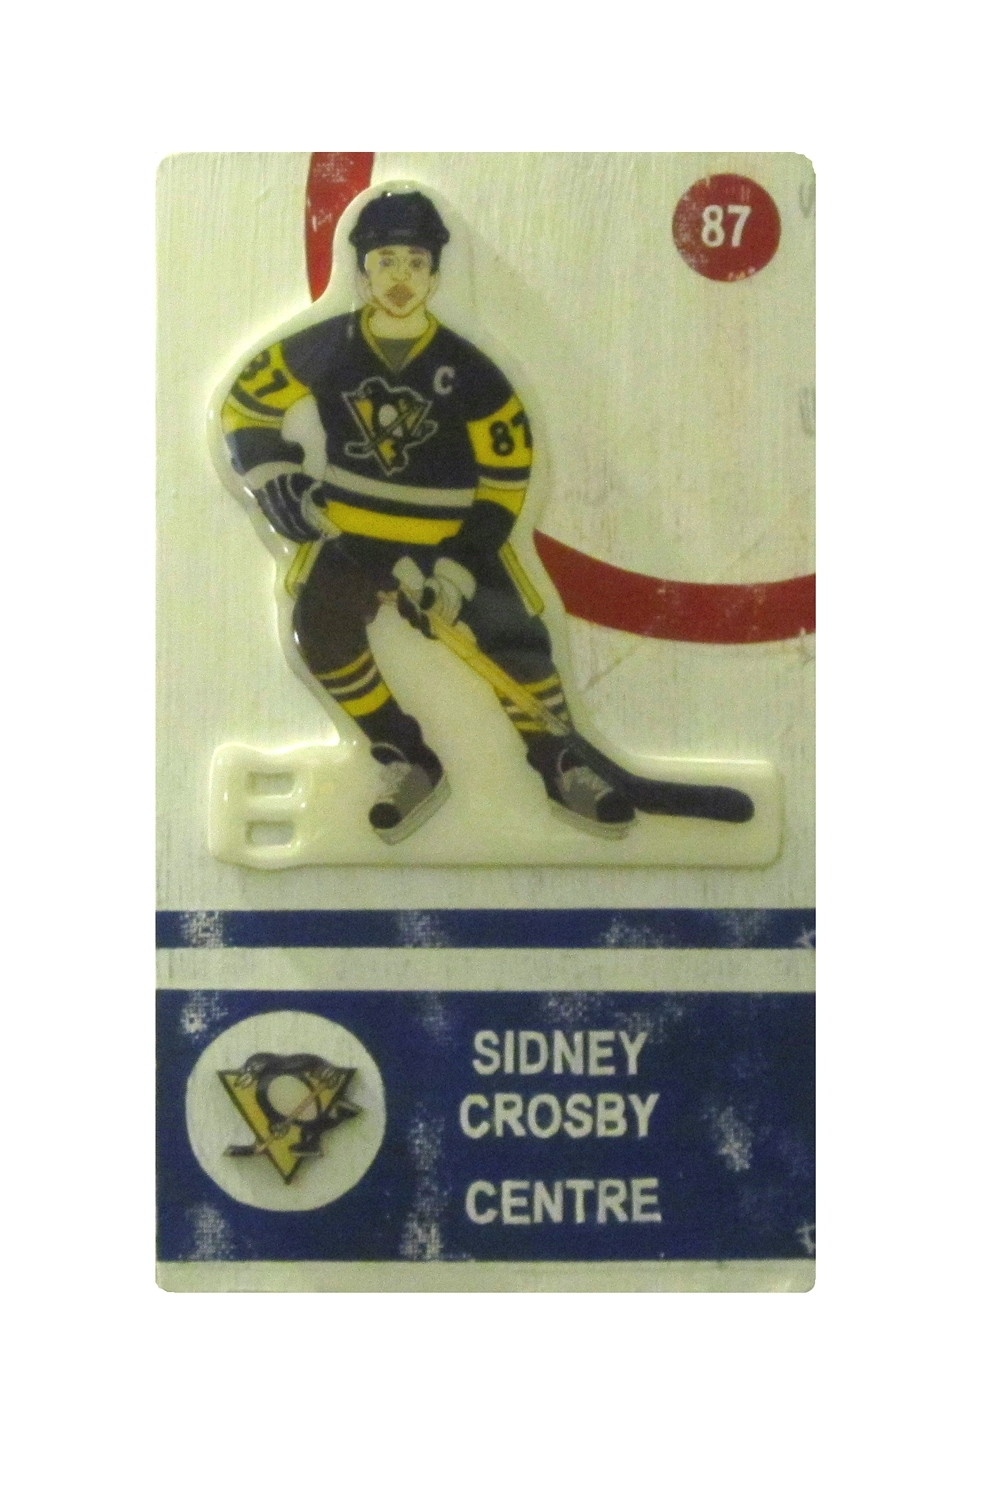 Sidney Crosby Centre by Christopher Hayes